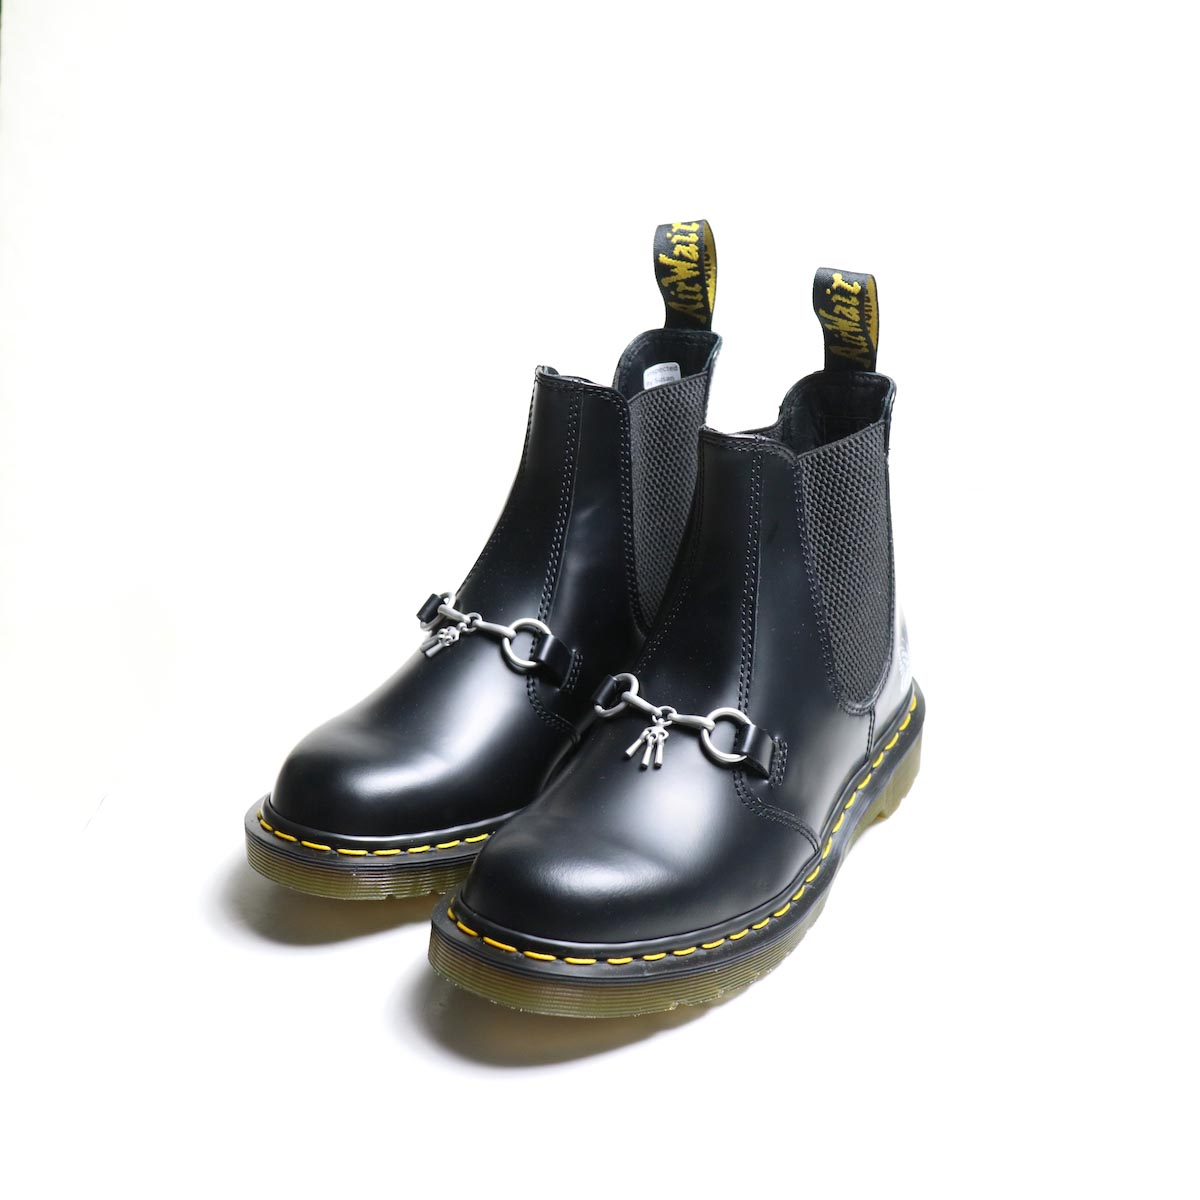 NEEDLES x DR. MARTENS / CHELSEAS BOOT With BIT正面